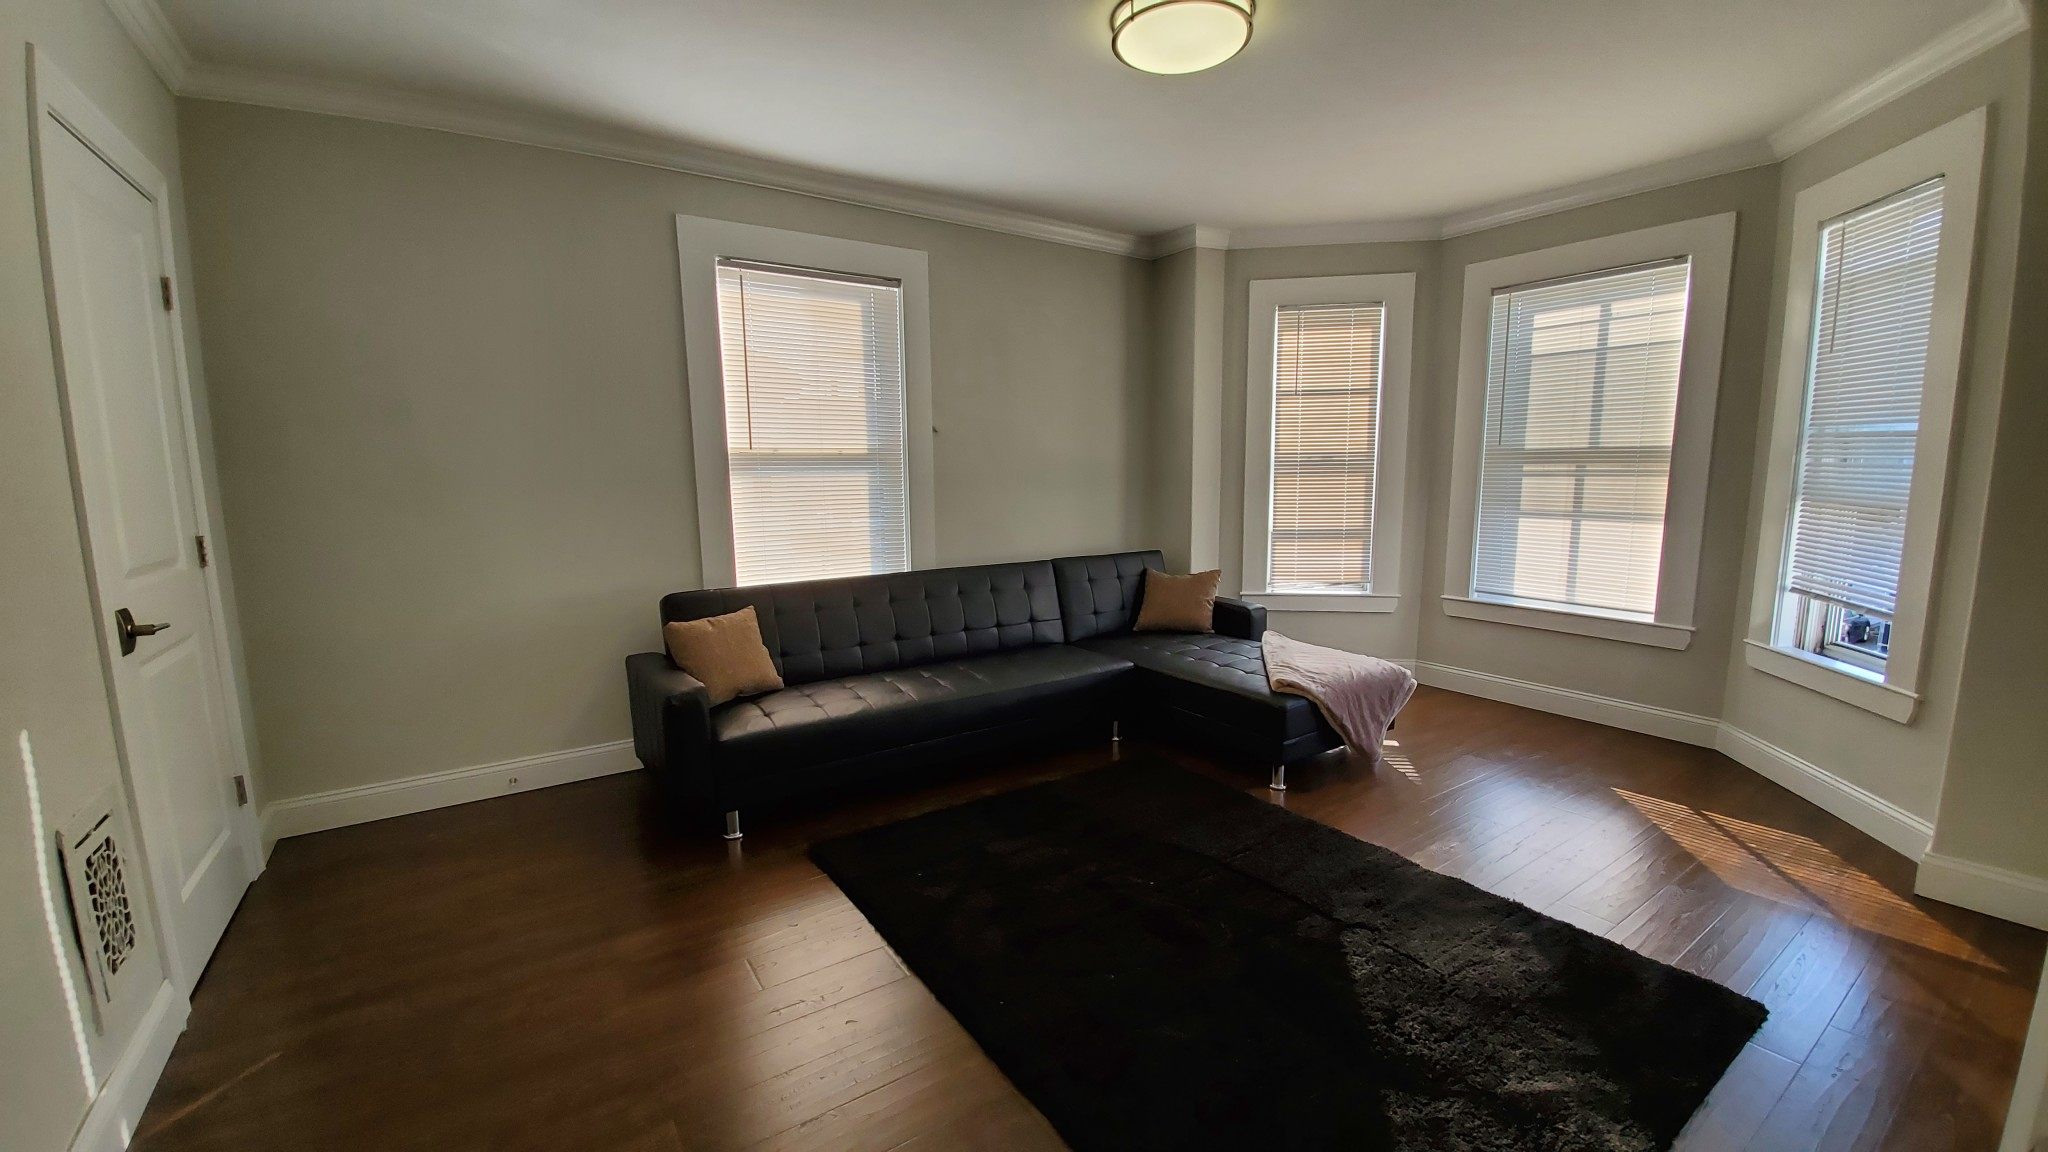 4 Beds, 2 Baths apartment in Waltham for $650